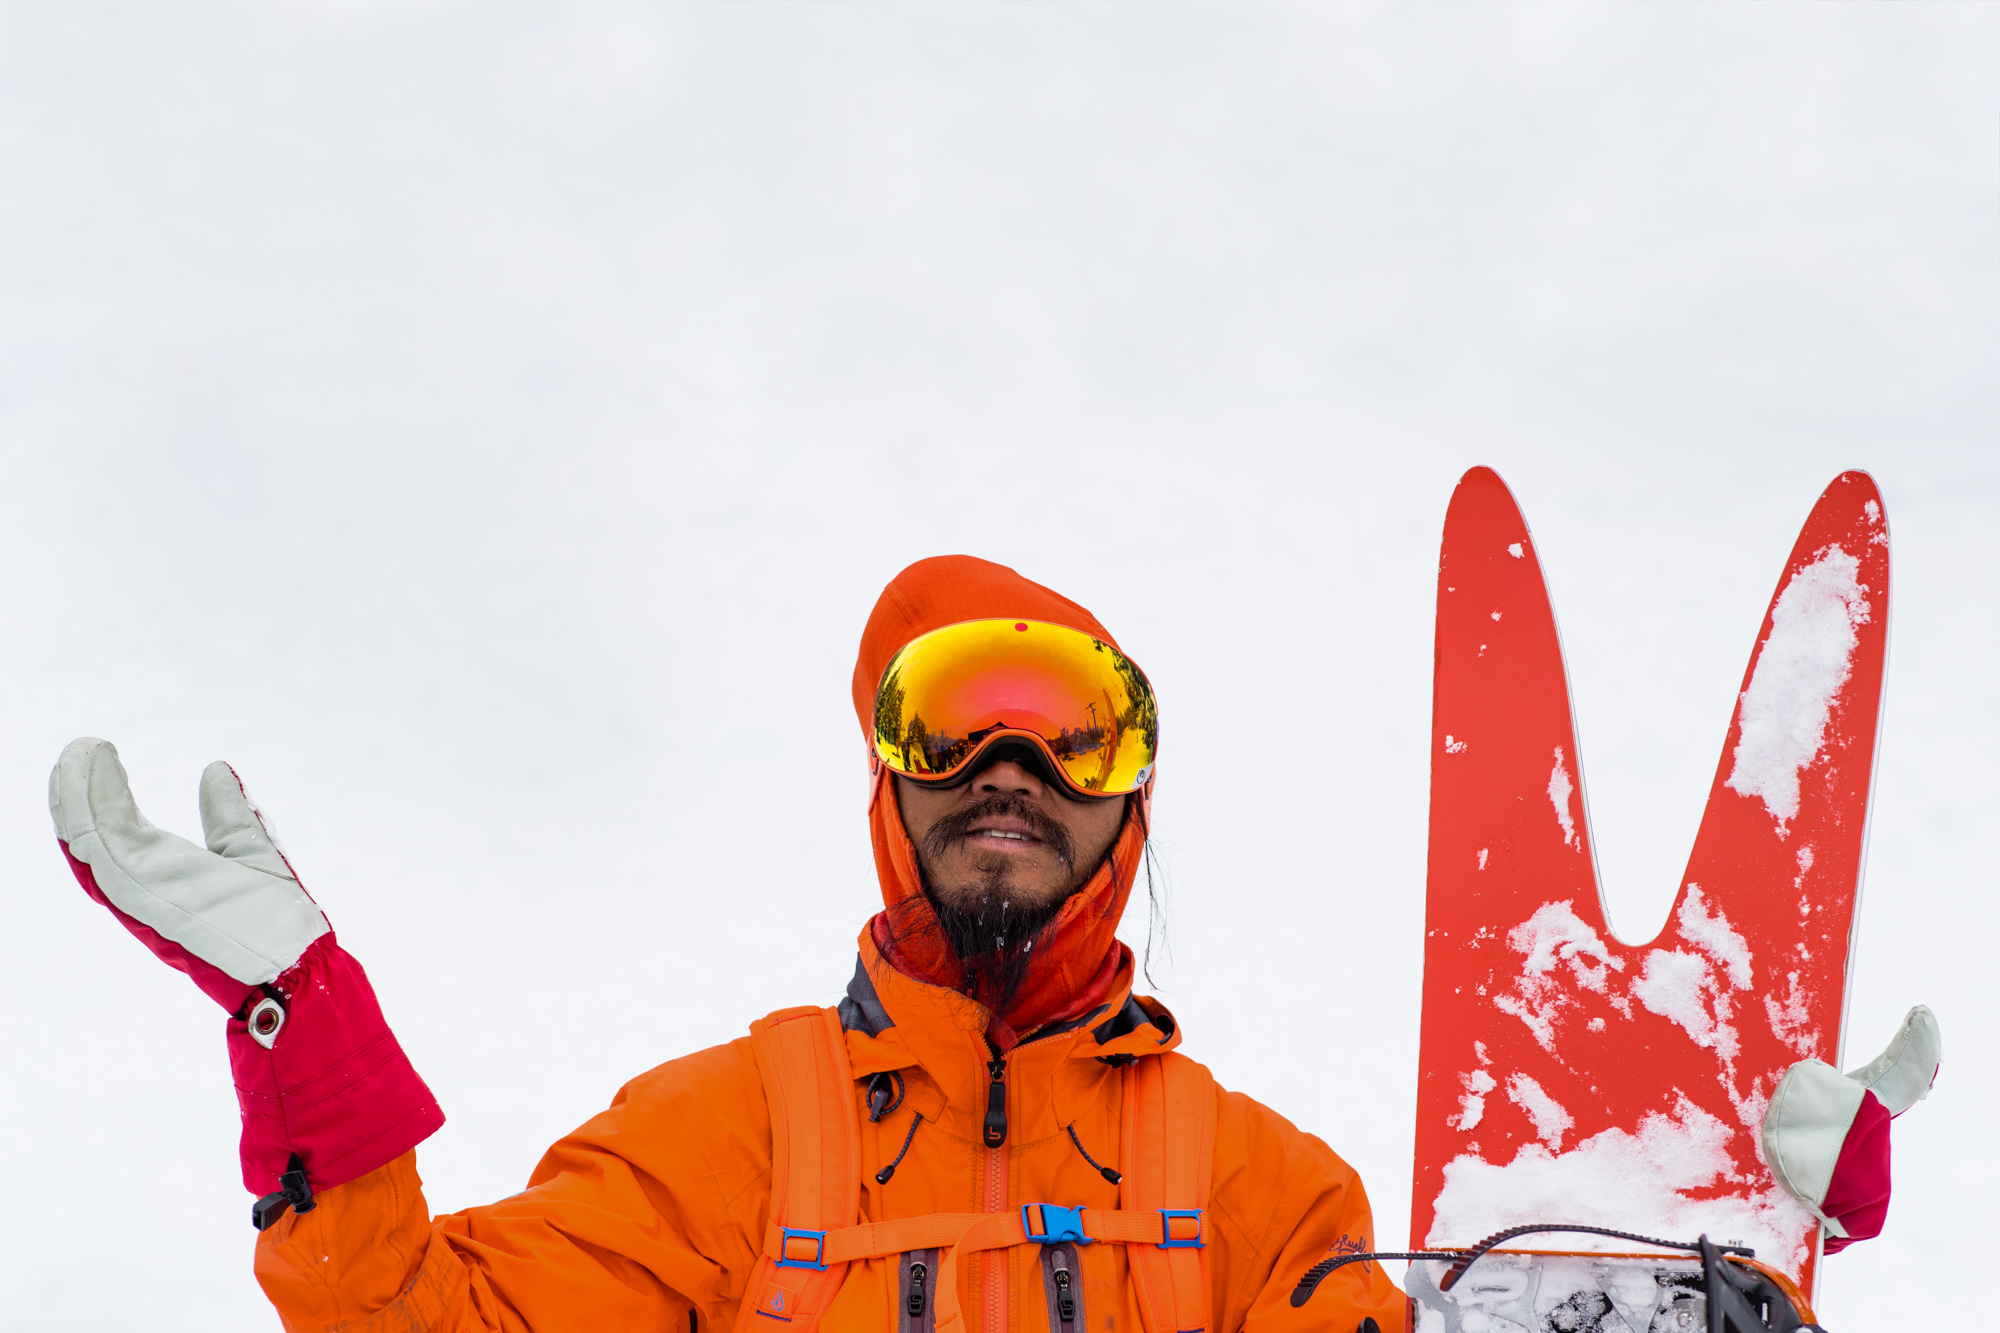 orange-man-snowboarder-japan-001